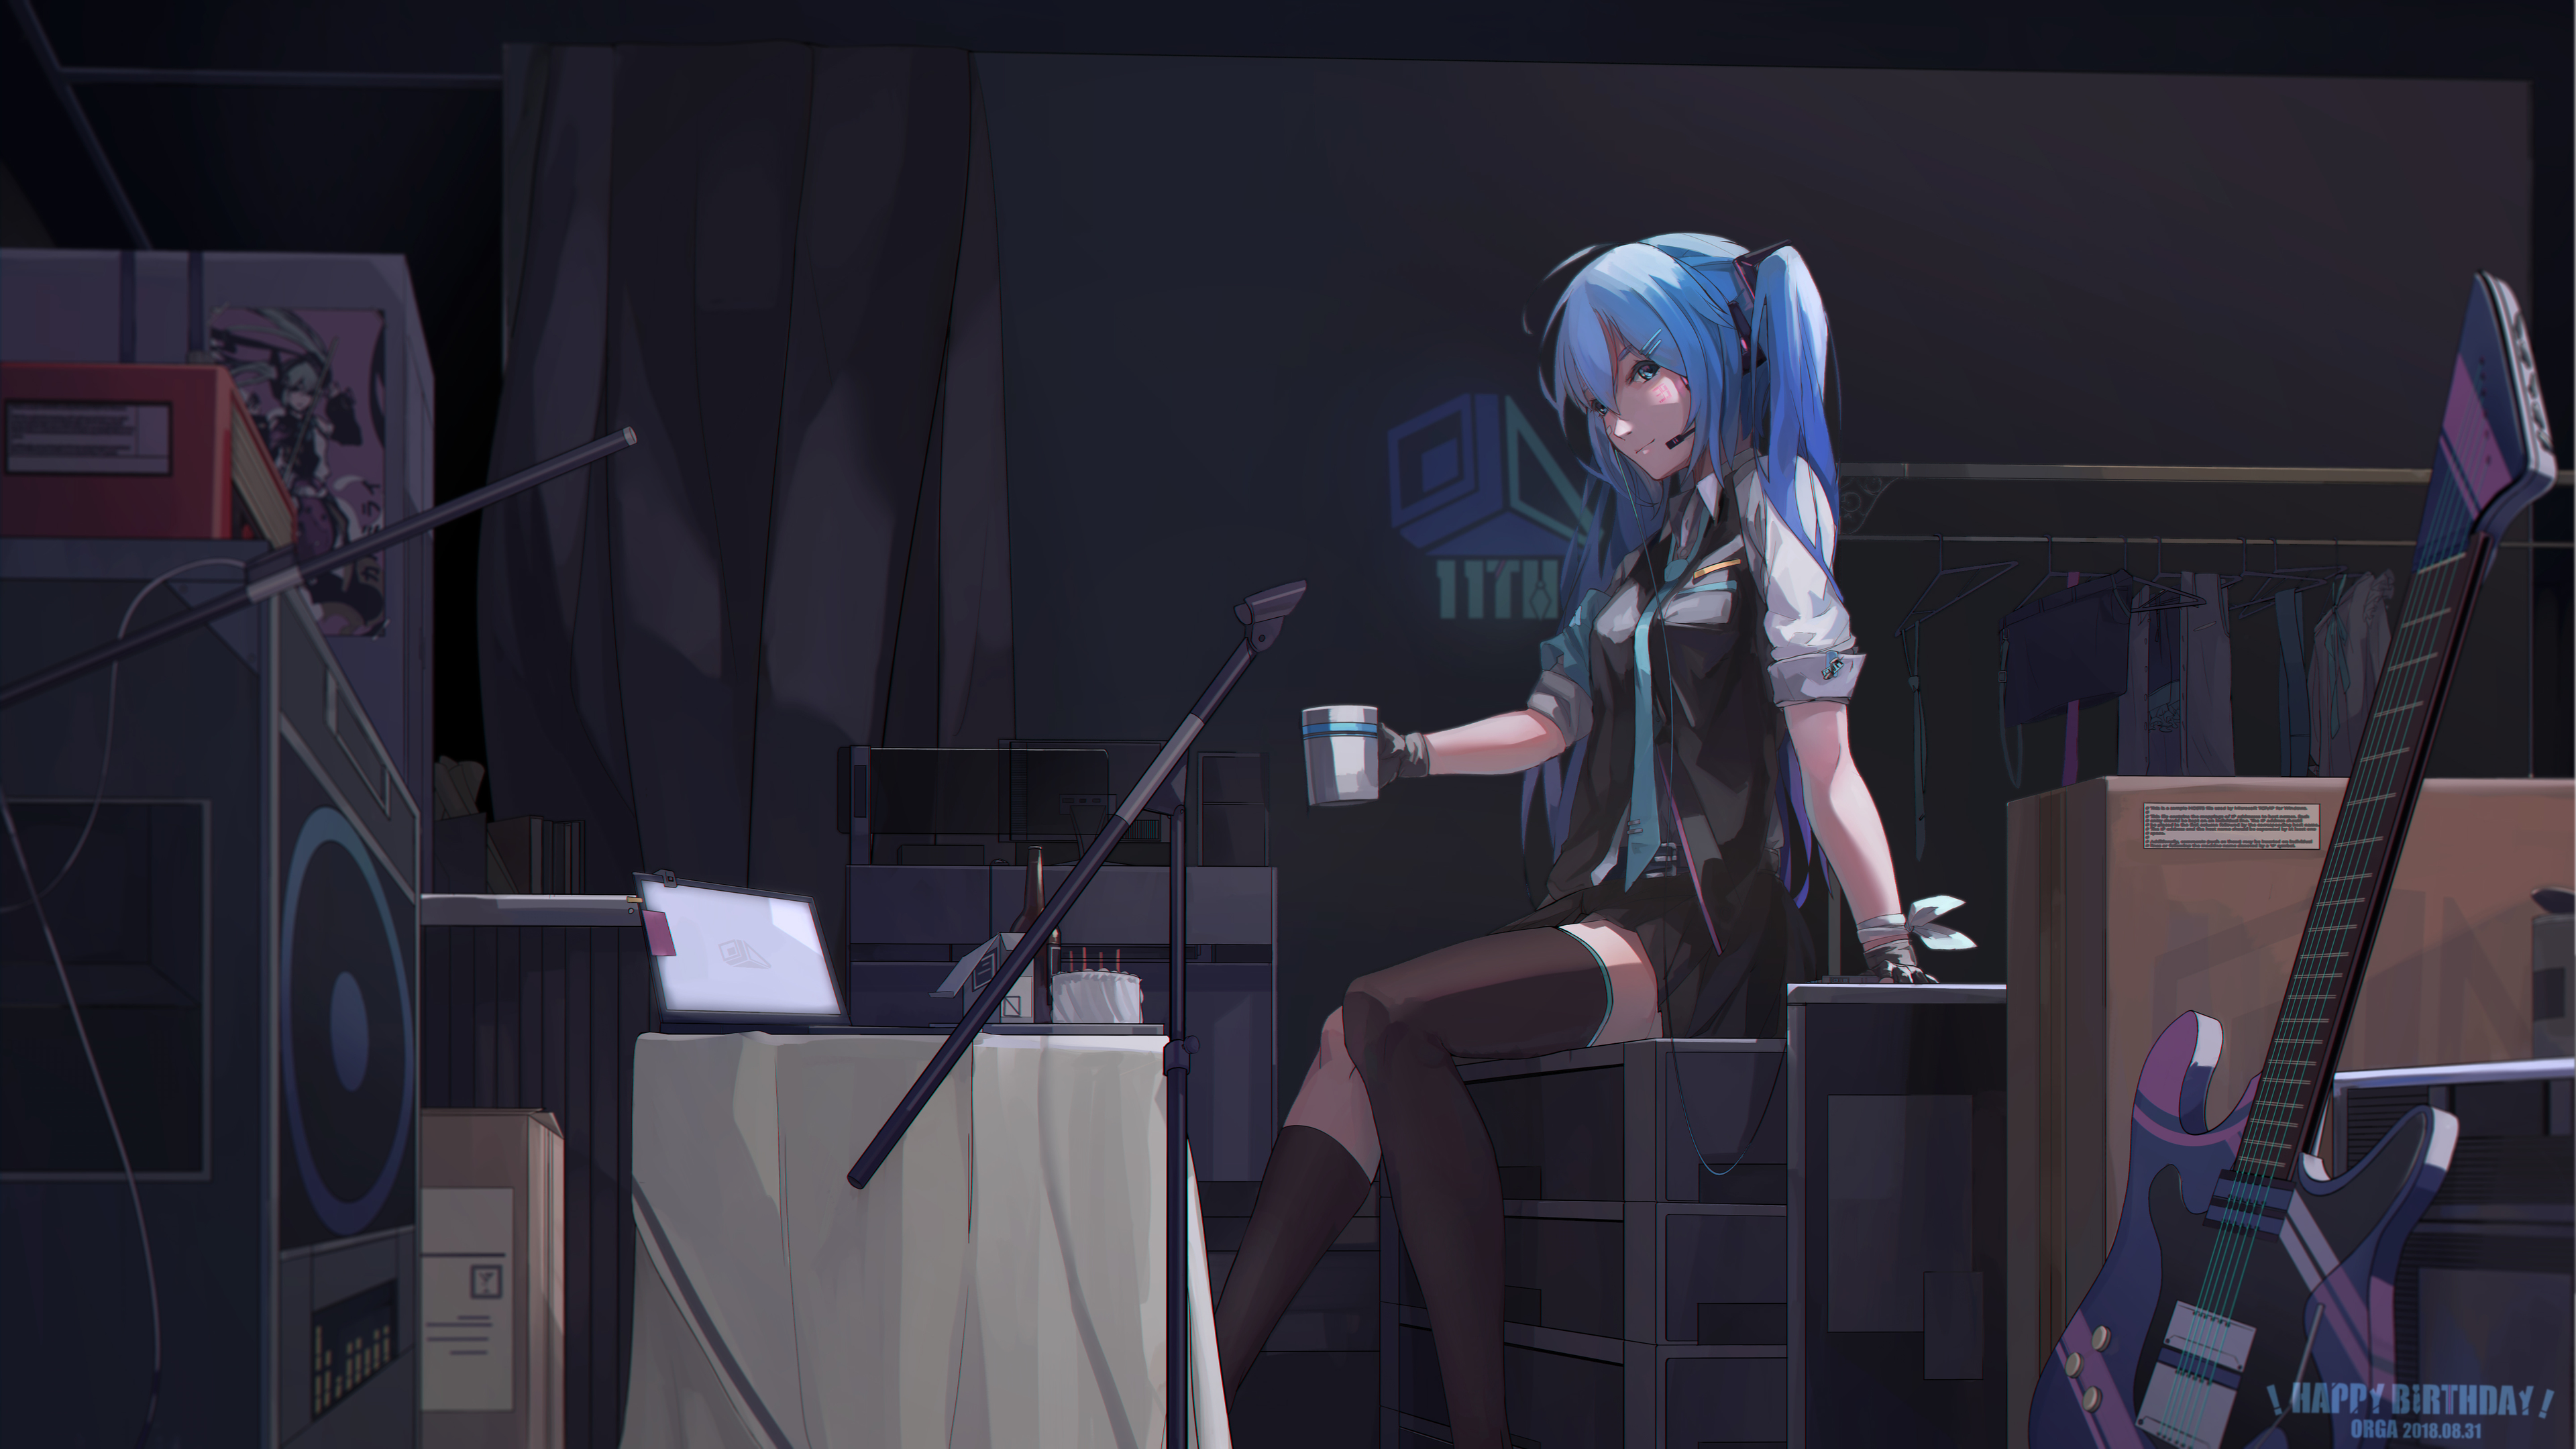 Wallpaper 4k Hatsune Miku Blue Hair 4k 4k Wallpapers Anime Girl